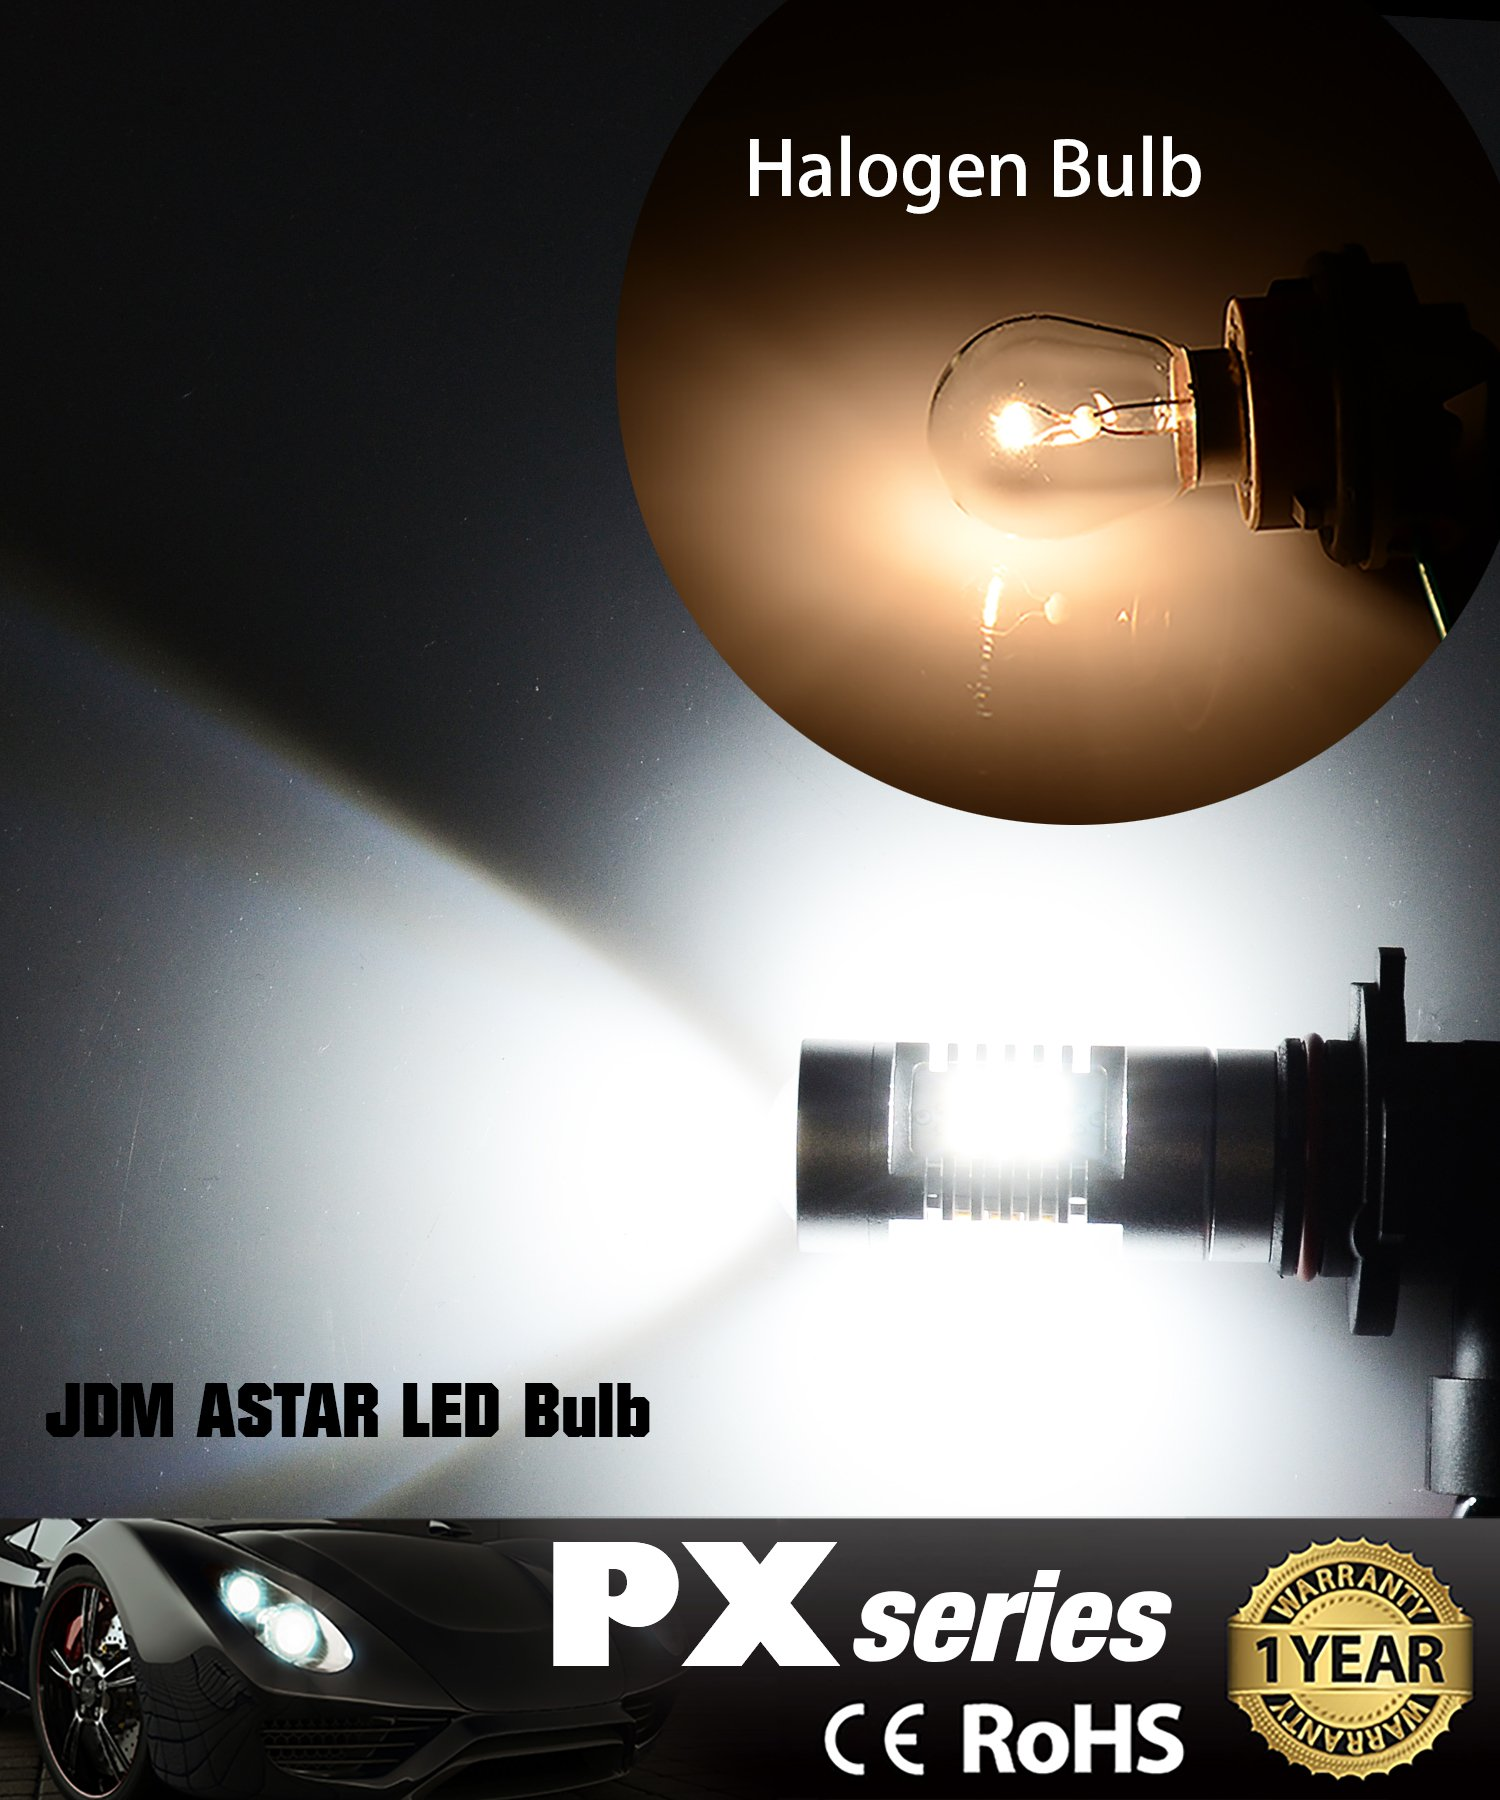 JDM ASTAR 2520 Lumens Extremely Bright PX Chips H10 9140 9145 LED Fog Light Bulbs with Projector for DRL or Fog Lights, Xenon White by JDM ASTAR (Image #2)